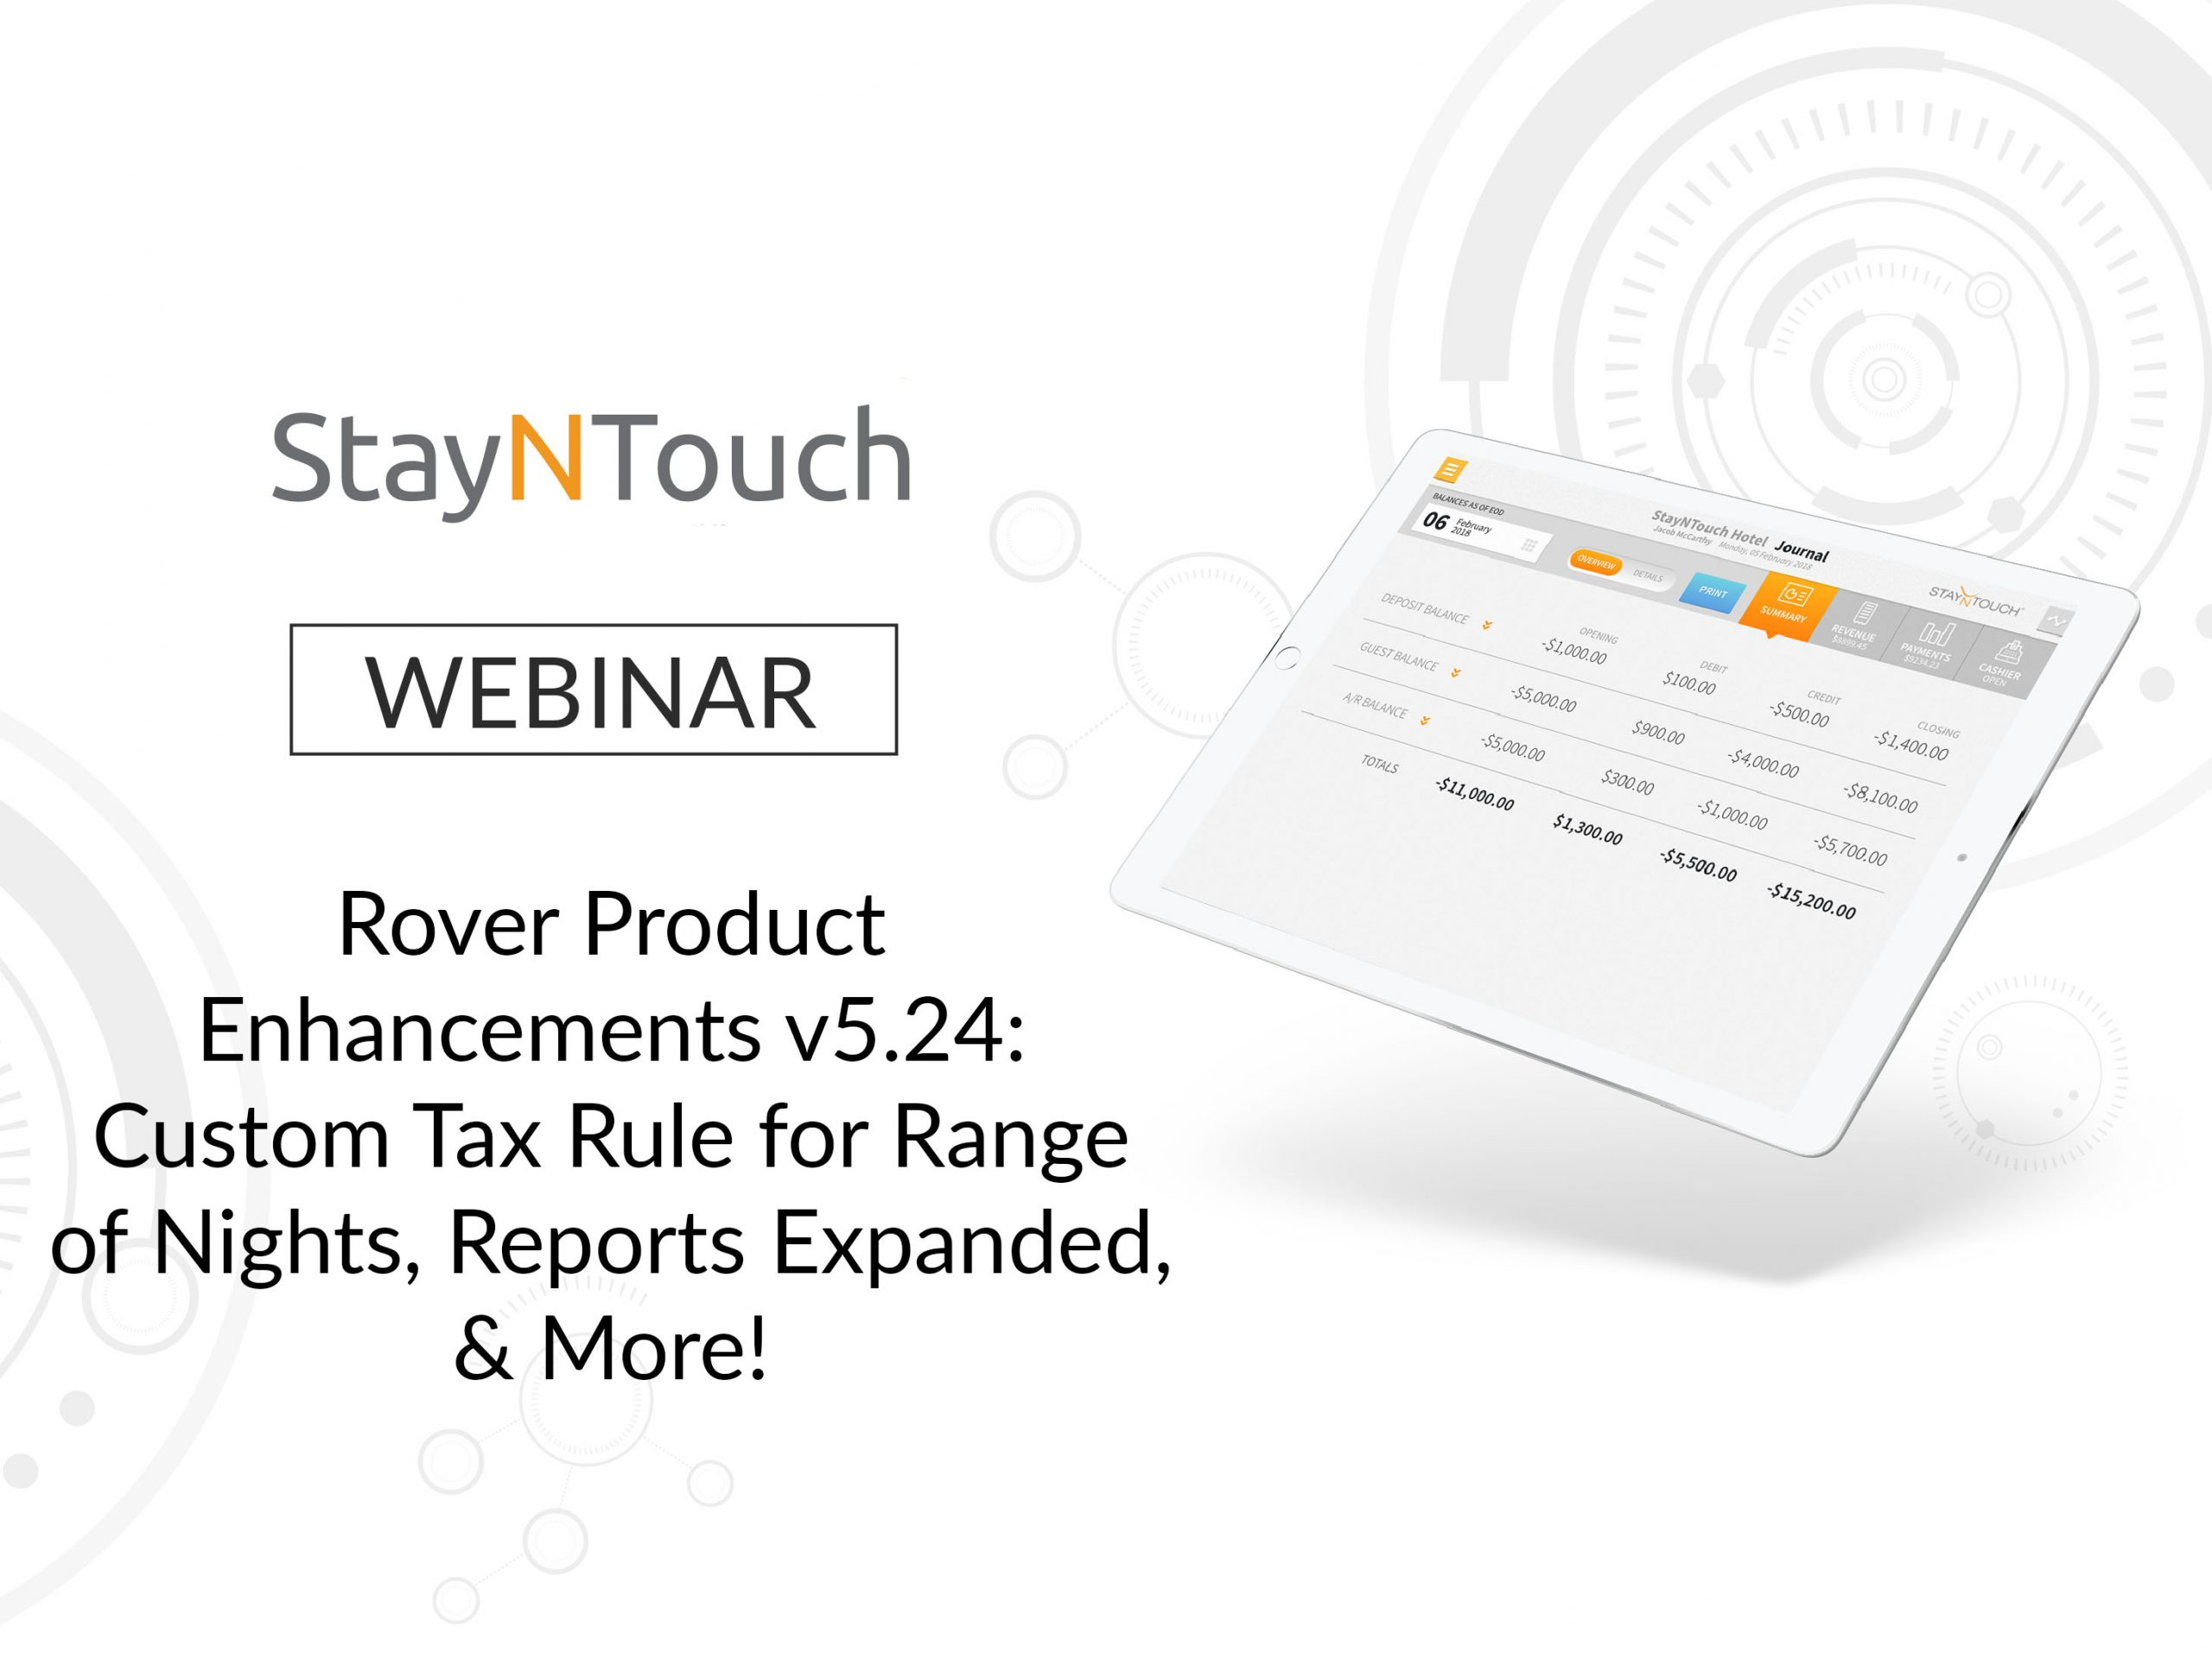 Rover Product Enhancements v5.24: Custom Tax Rule for Range of Nights, Reports Expanded, & More!